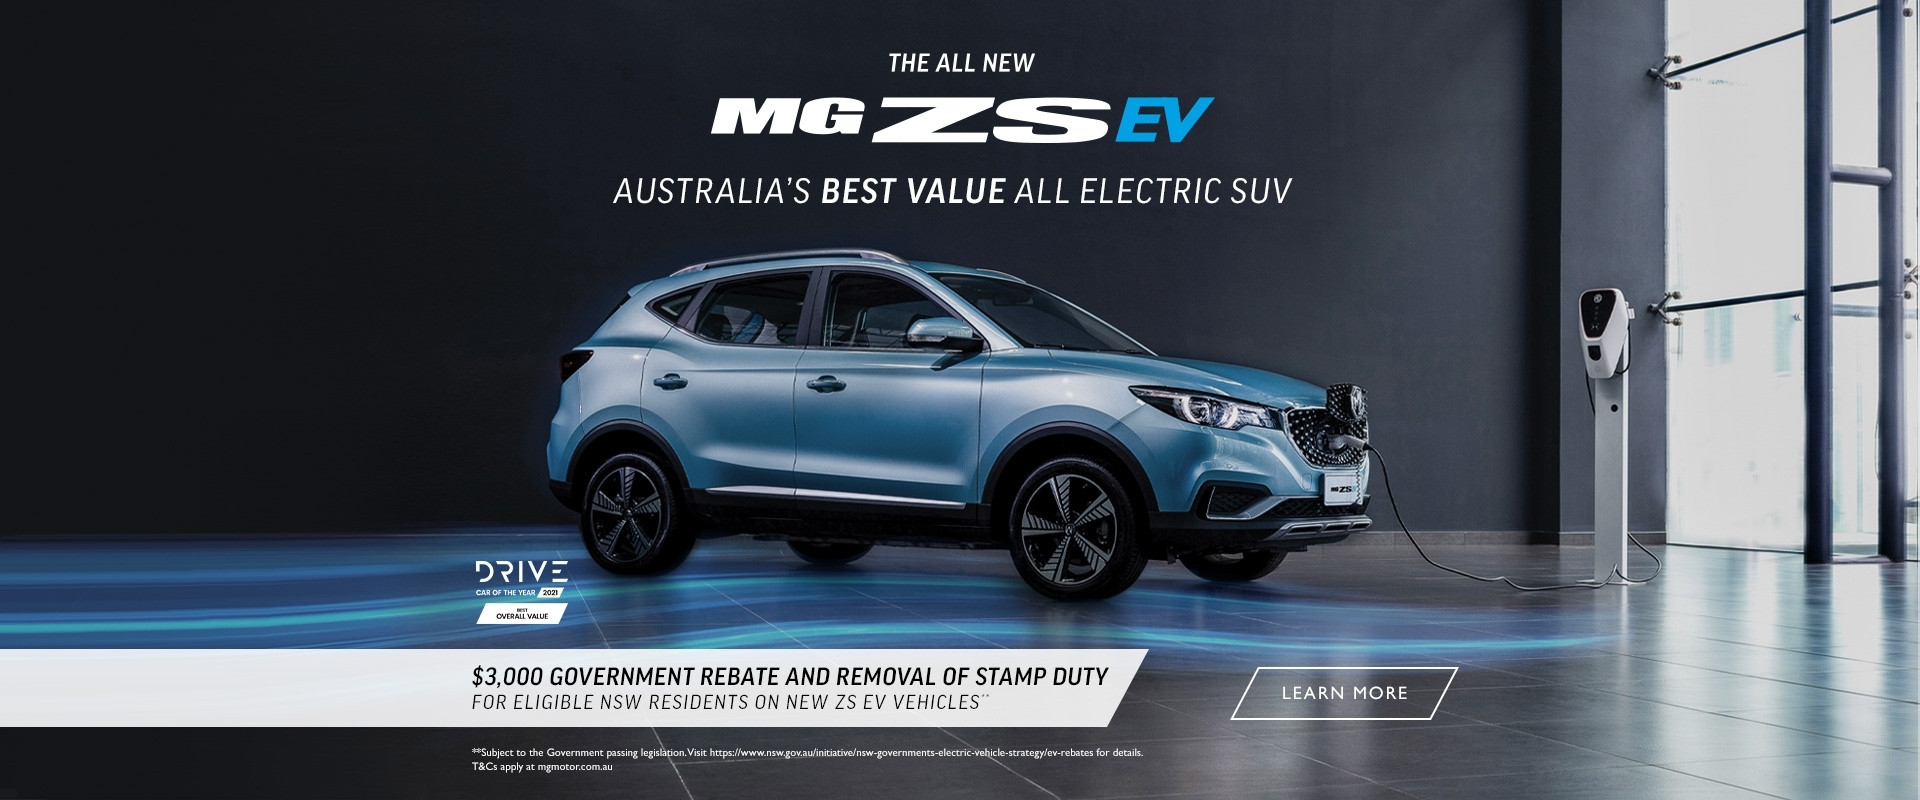 $3,000 government rebate and removal of stamp duty for eligible NSW residents on new ZS EV vehicles**